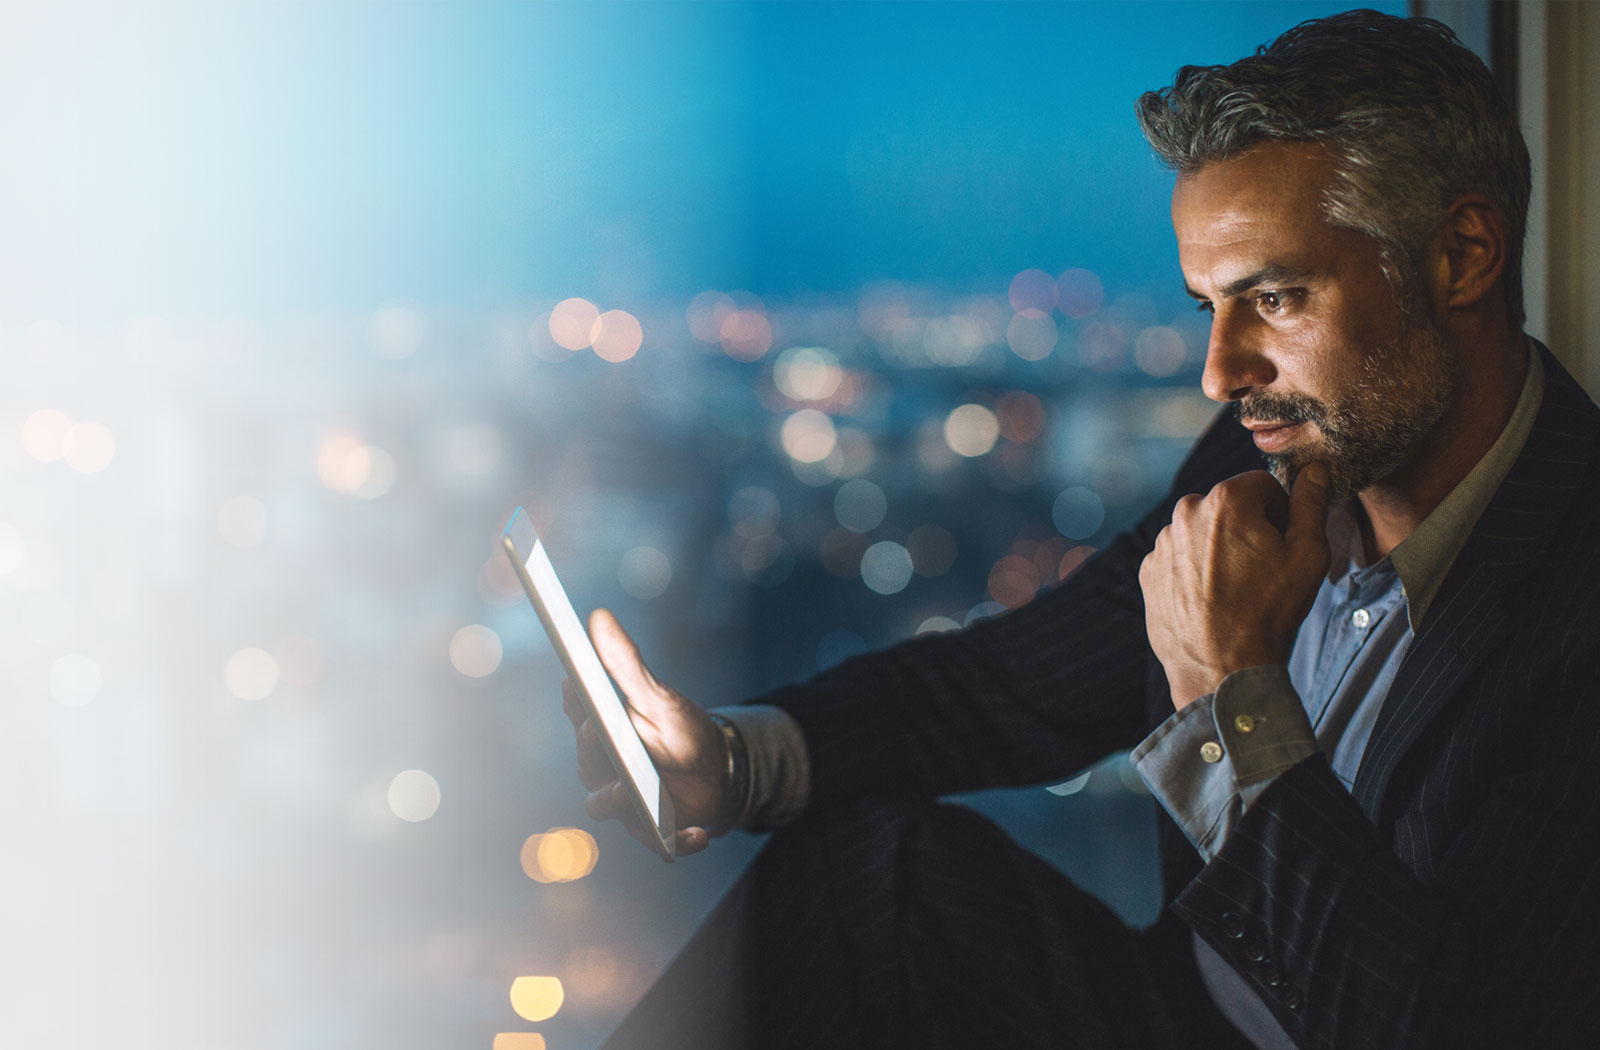 Modernize your video surveillance with a hardware-free cloud solution